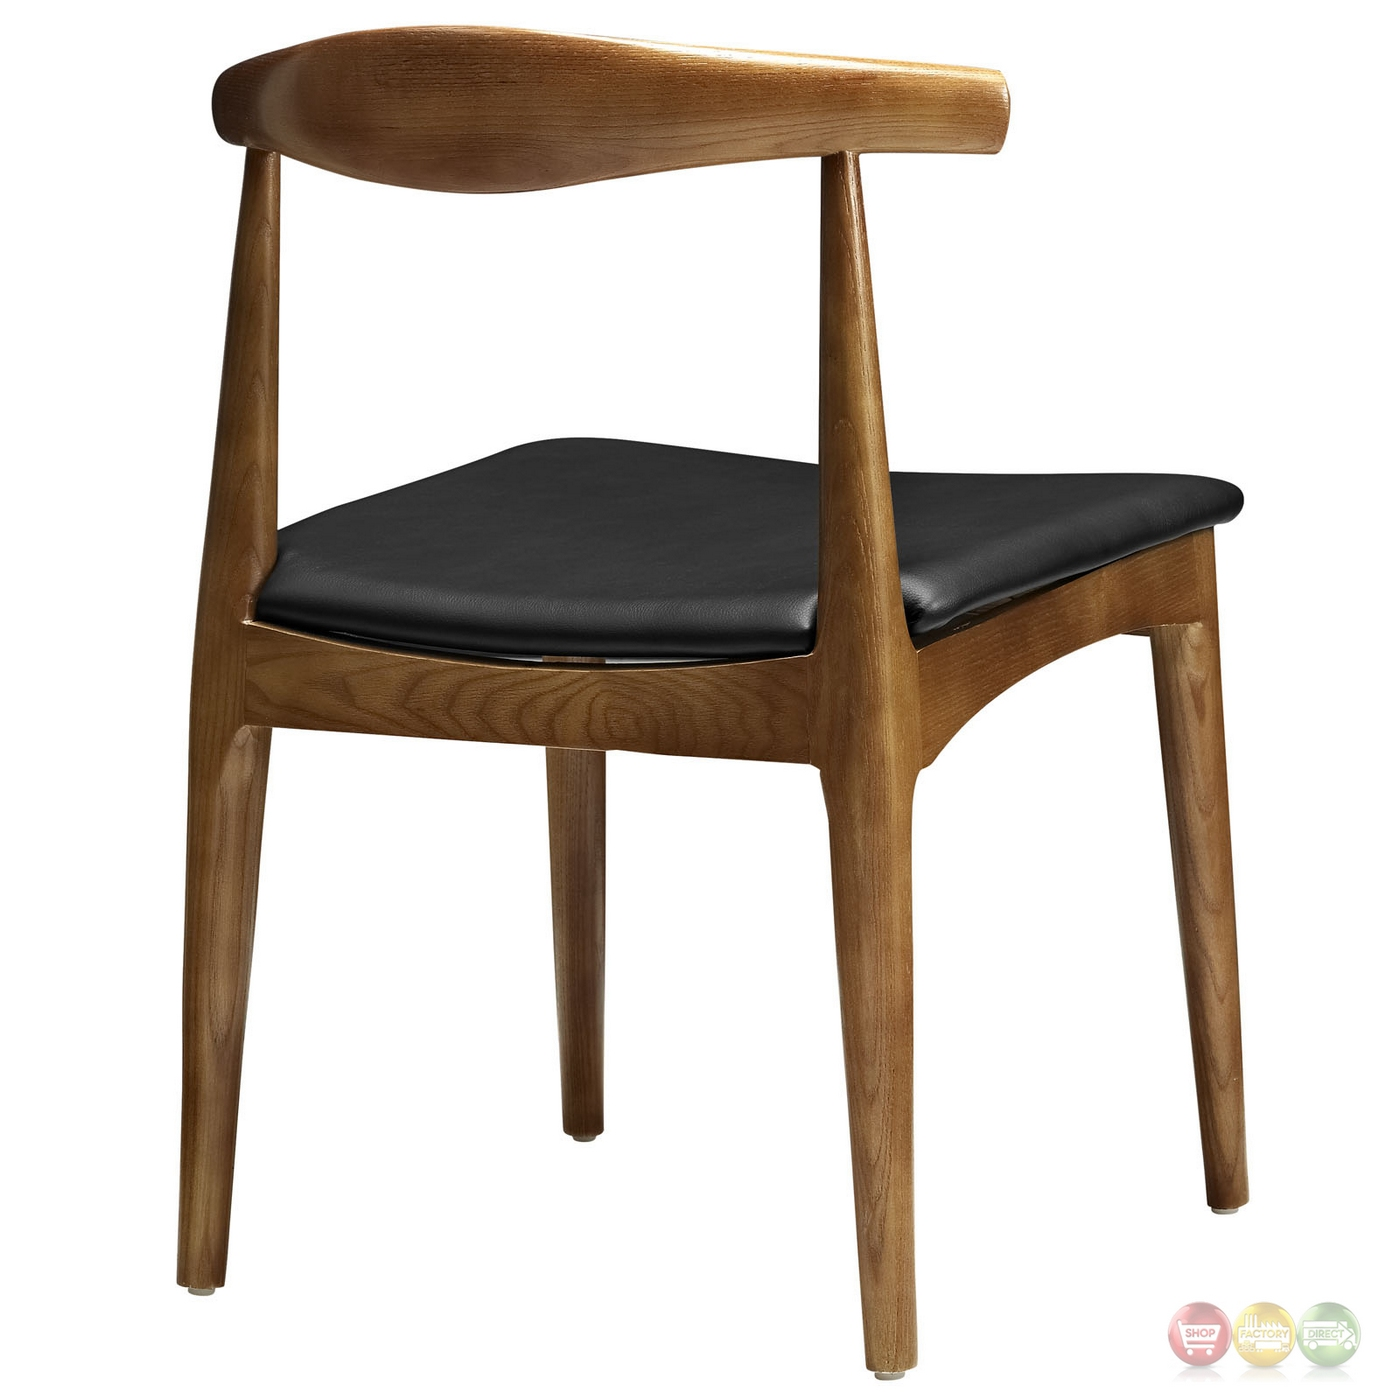 Tracy Mid Century Modern Curved Wood Dining Side Chair W Cushion Black